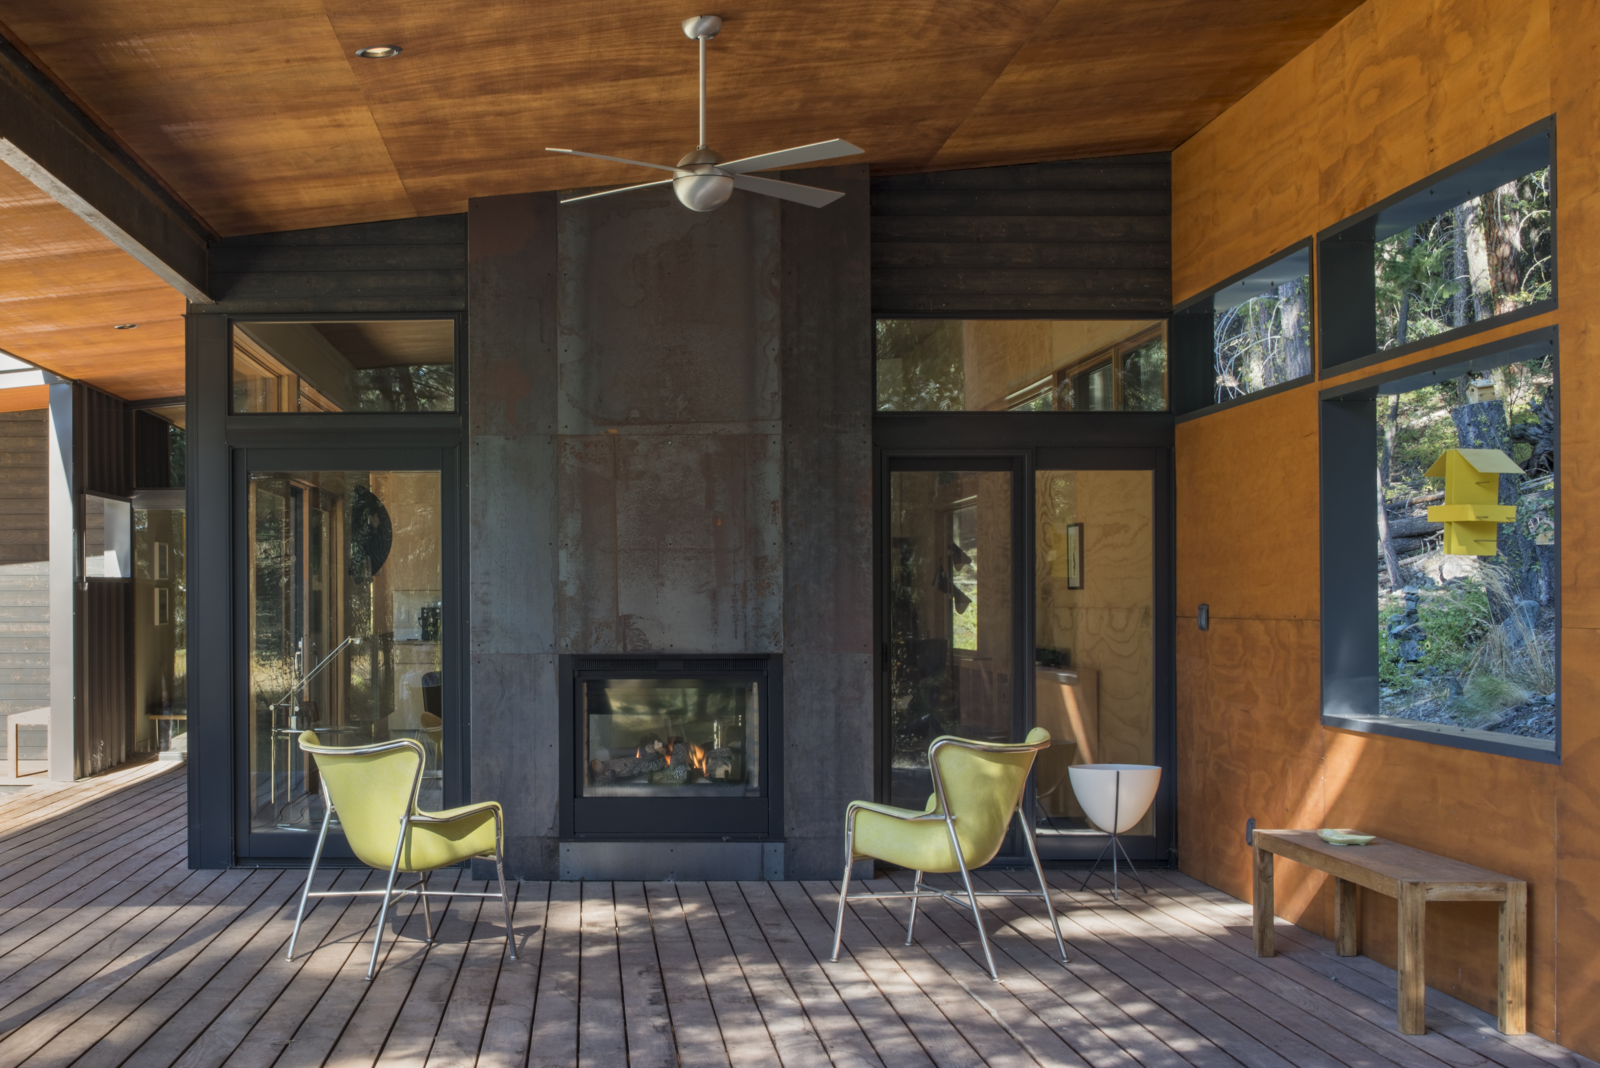 A Lean Cabin in Washington Dismantles the Indoor/Outdoor Divide - Photo 4 of 10